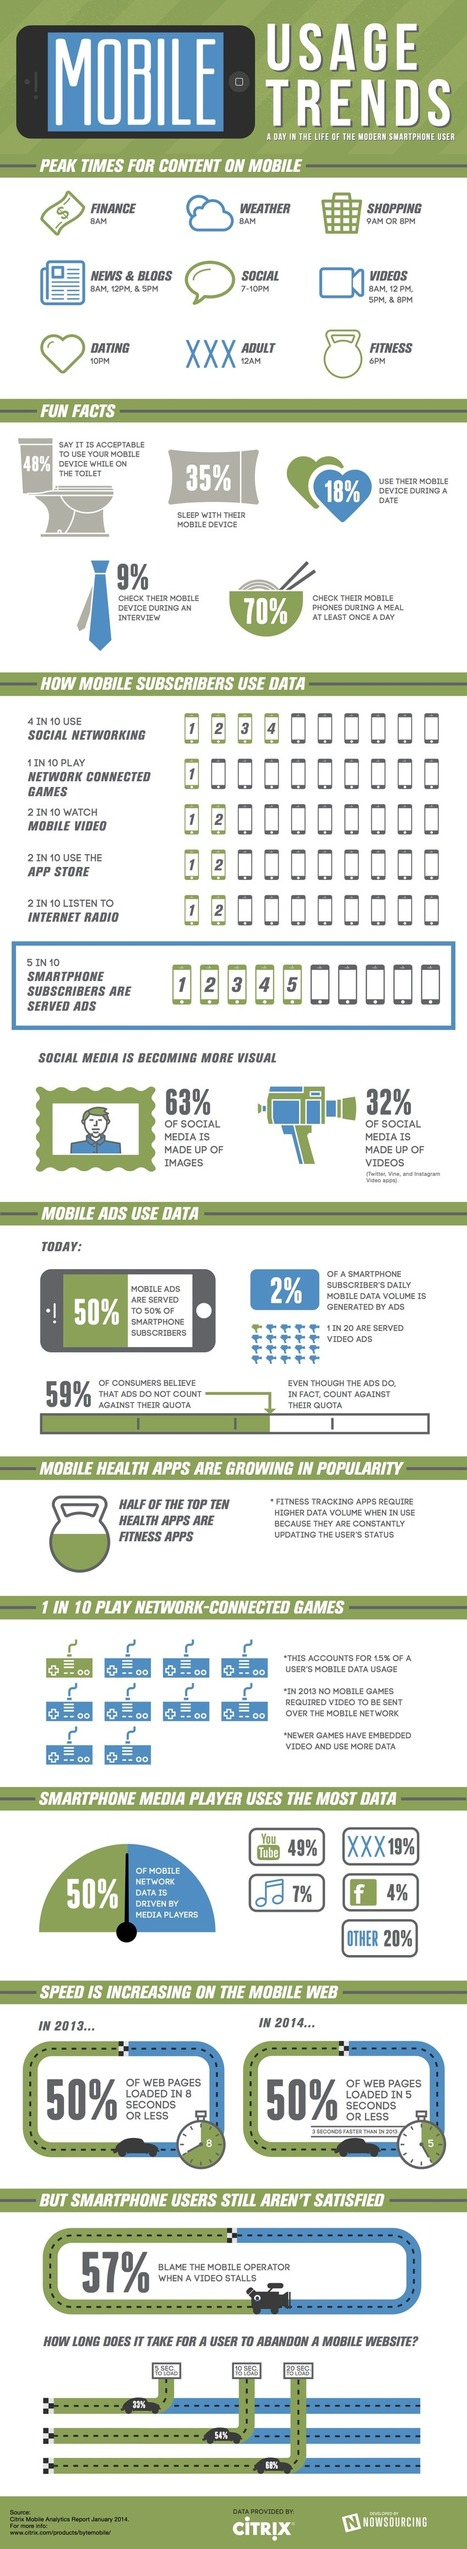 A Day in the Life of the Modern Smartphone User [Infographic] | JOIN SCOOP.IT AND FOLLOW ME ON SCOOP.IT | Scoop.it